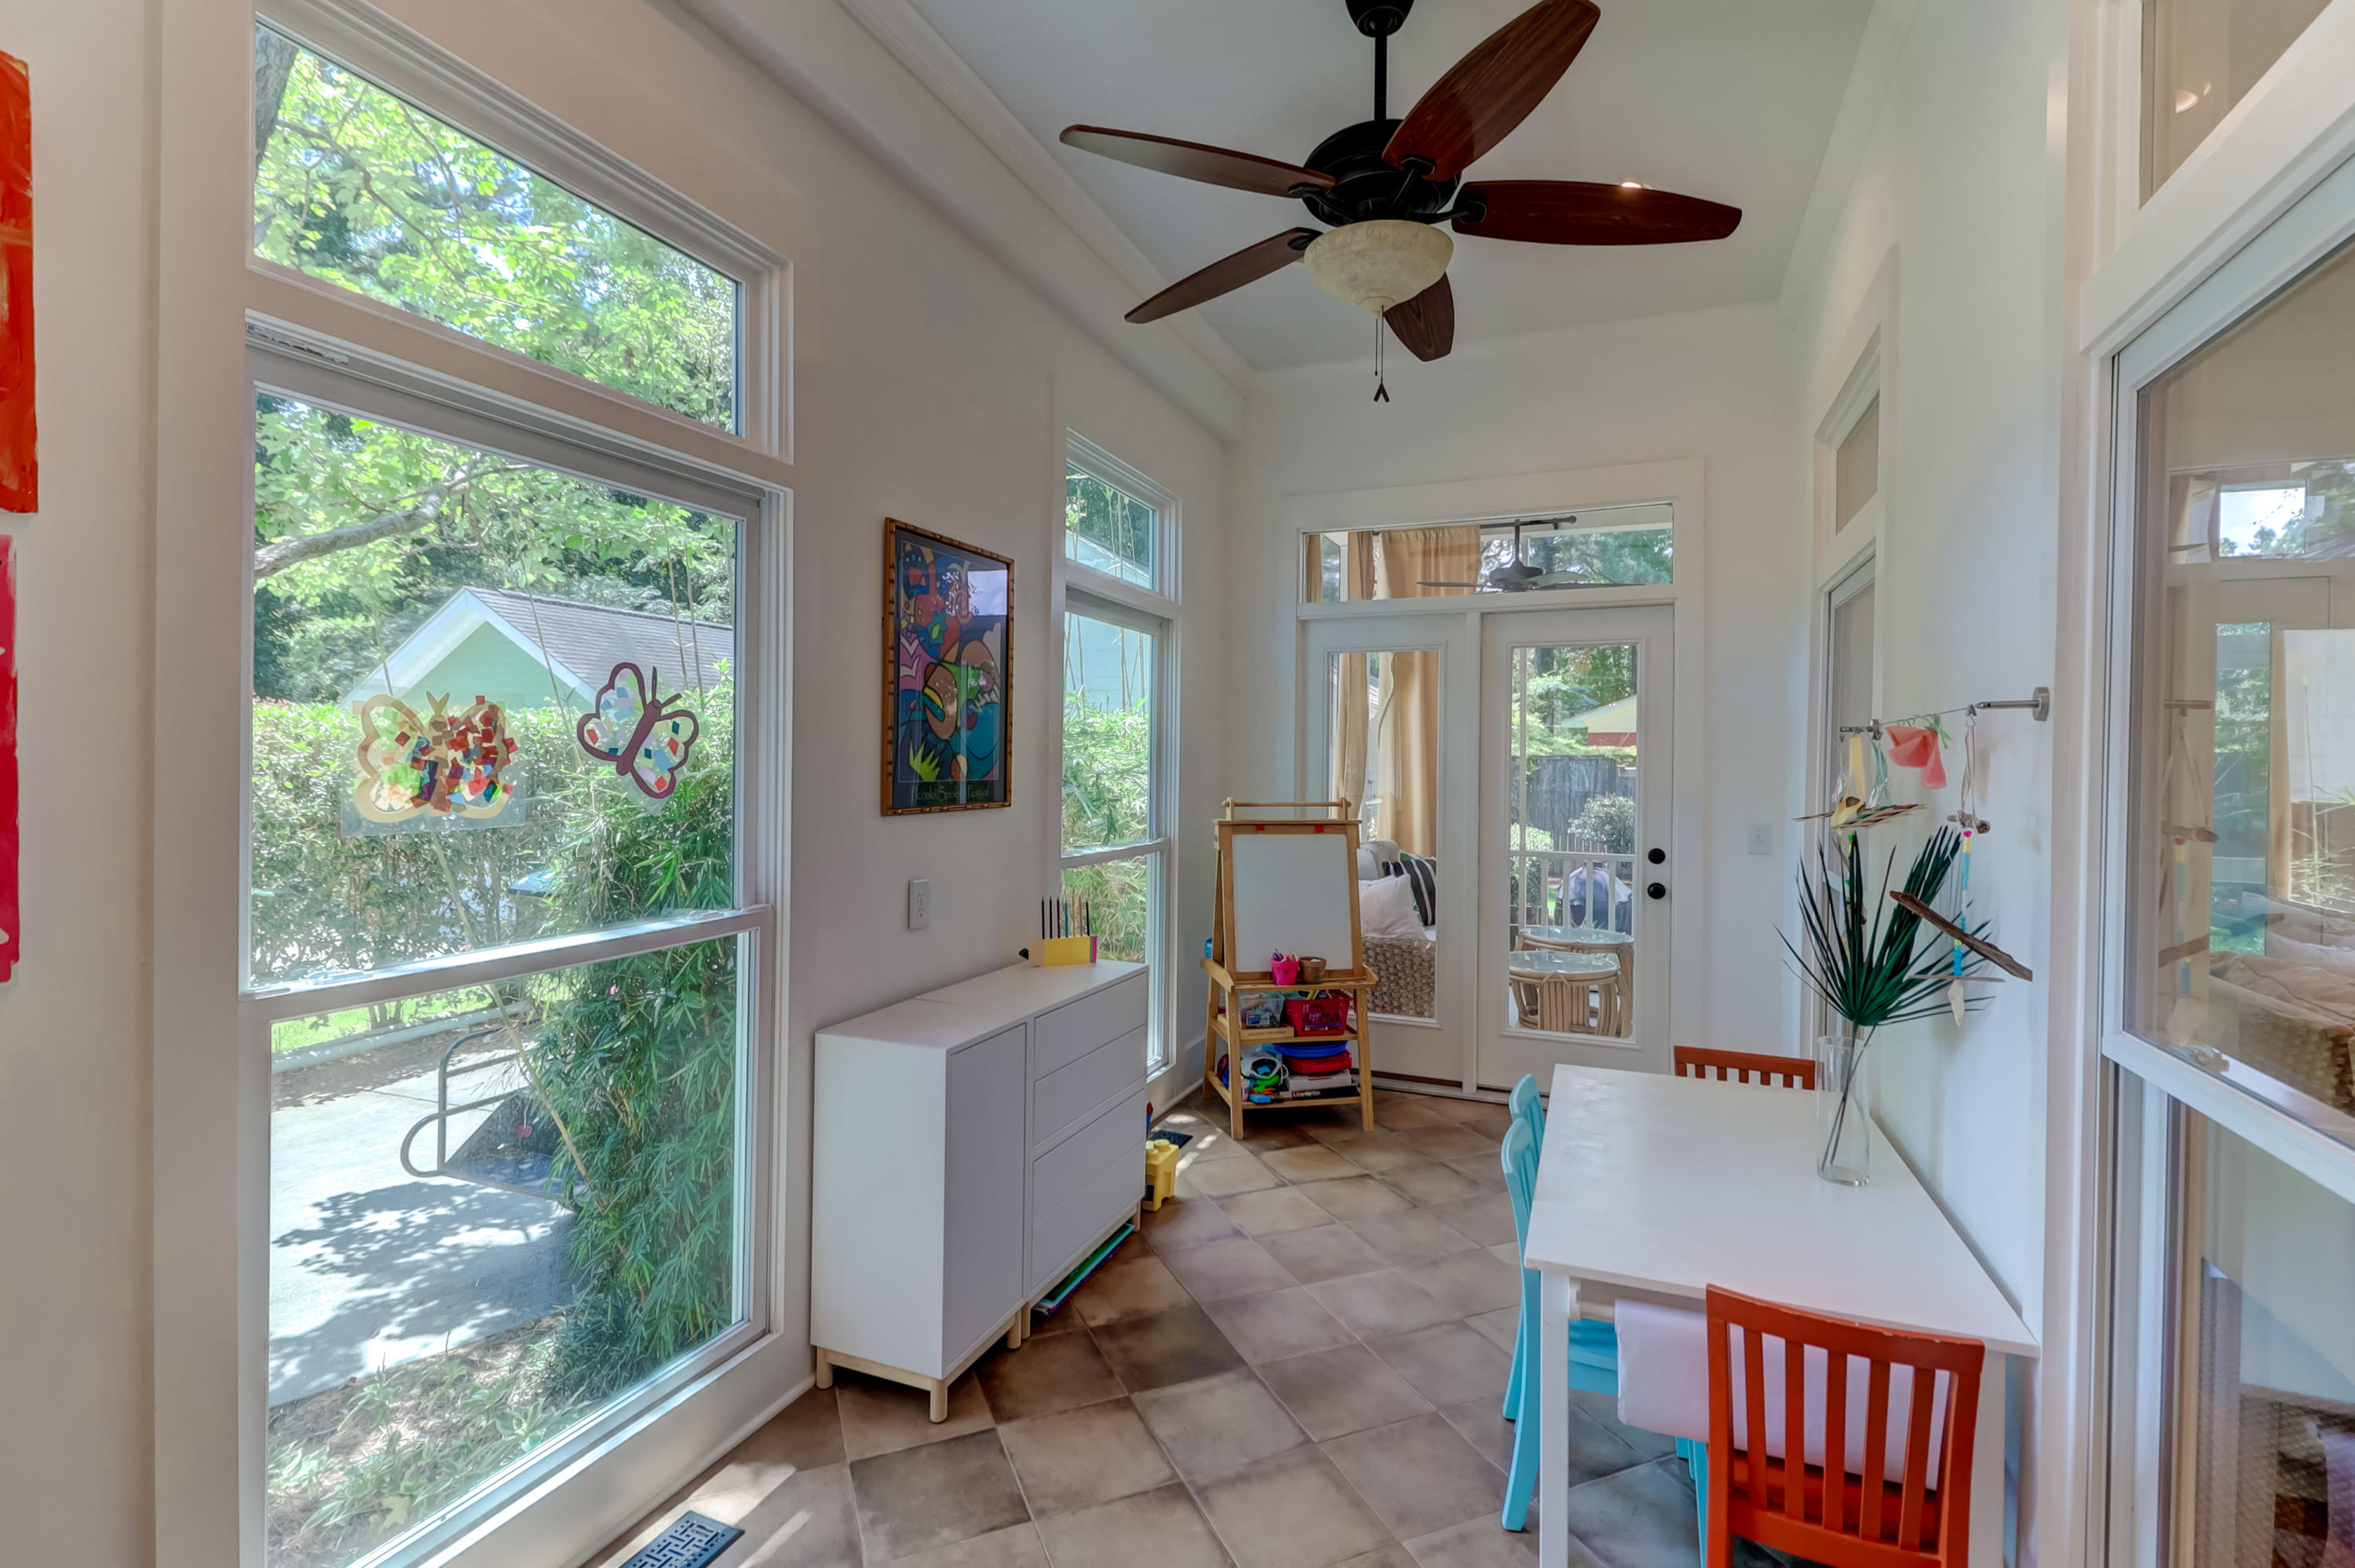 The Villages In St Johns Woods Homes For Sale - 5056 Coral Reef Dr, Johns Island, SC - 41